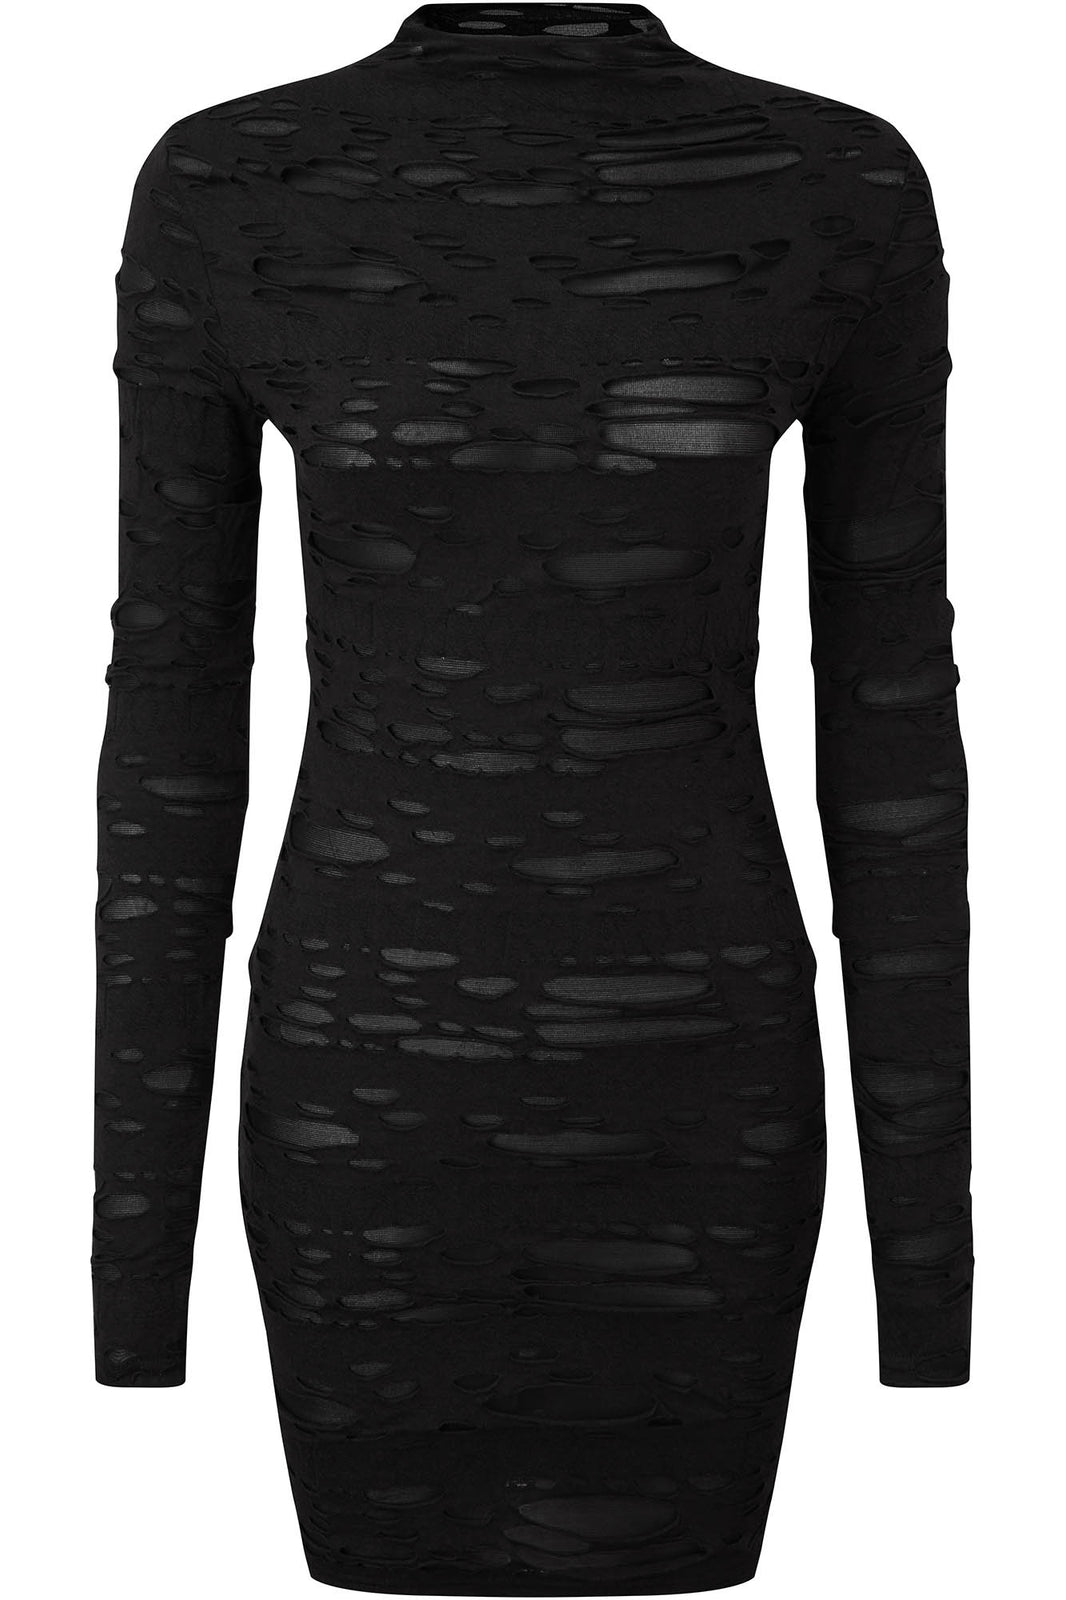 Terror Bodycon Dress